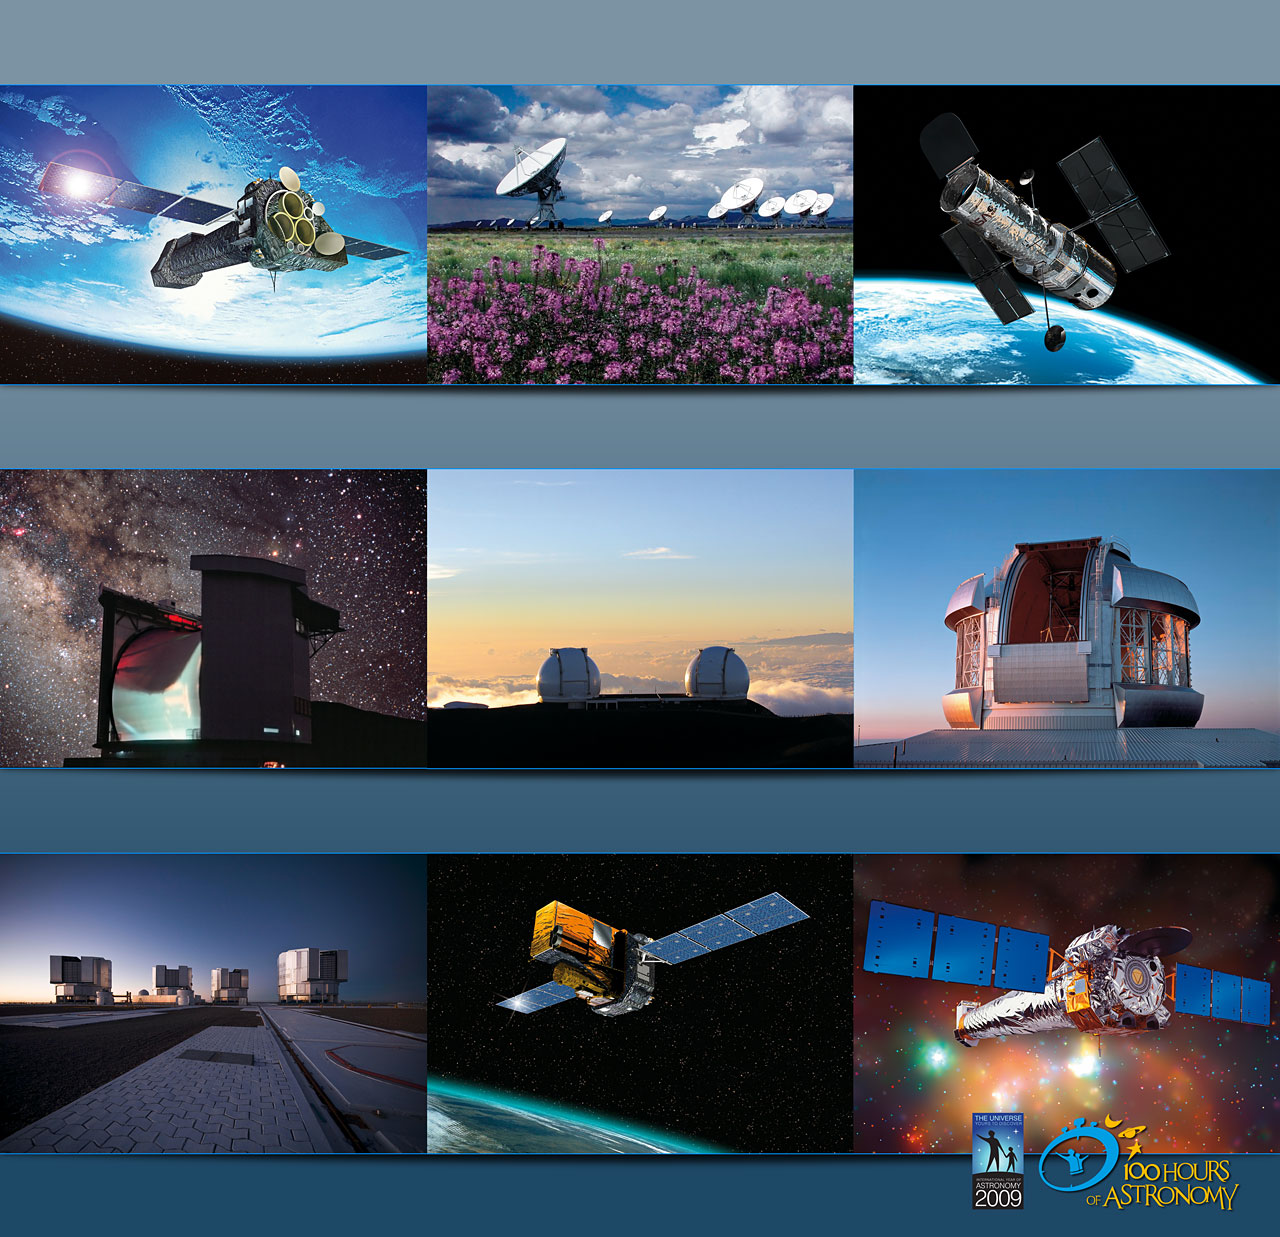 24-hour webcast from the largest telescopes